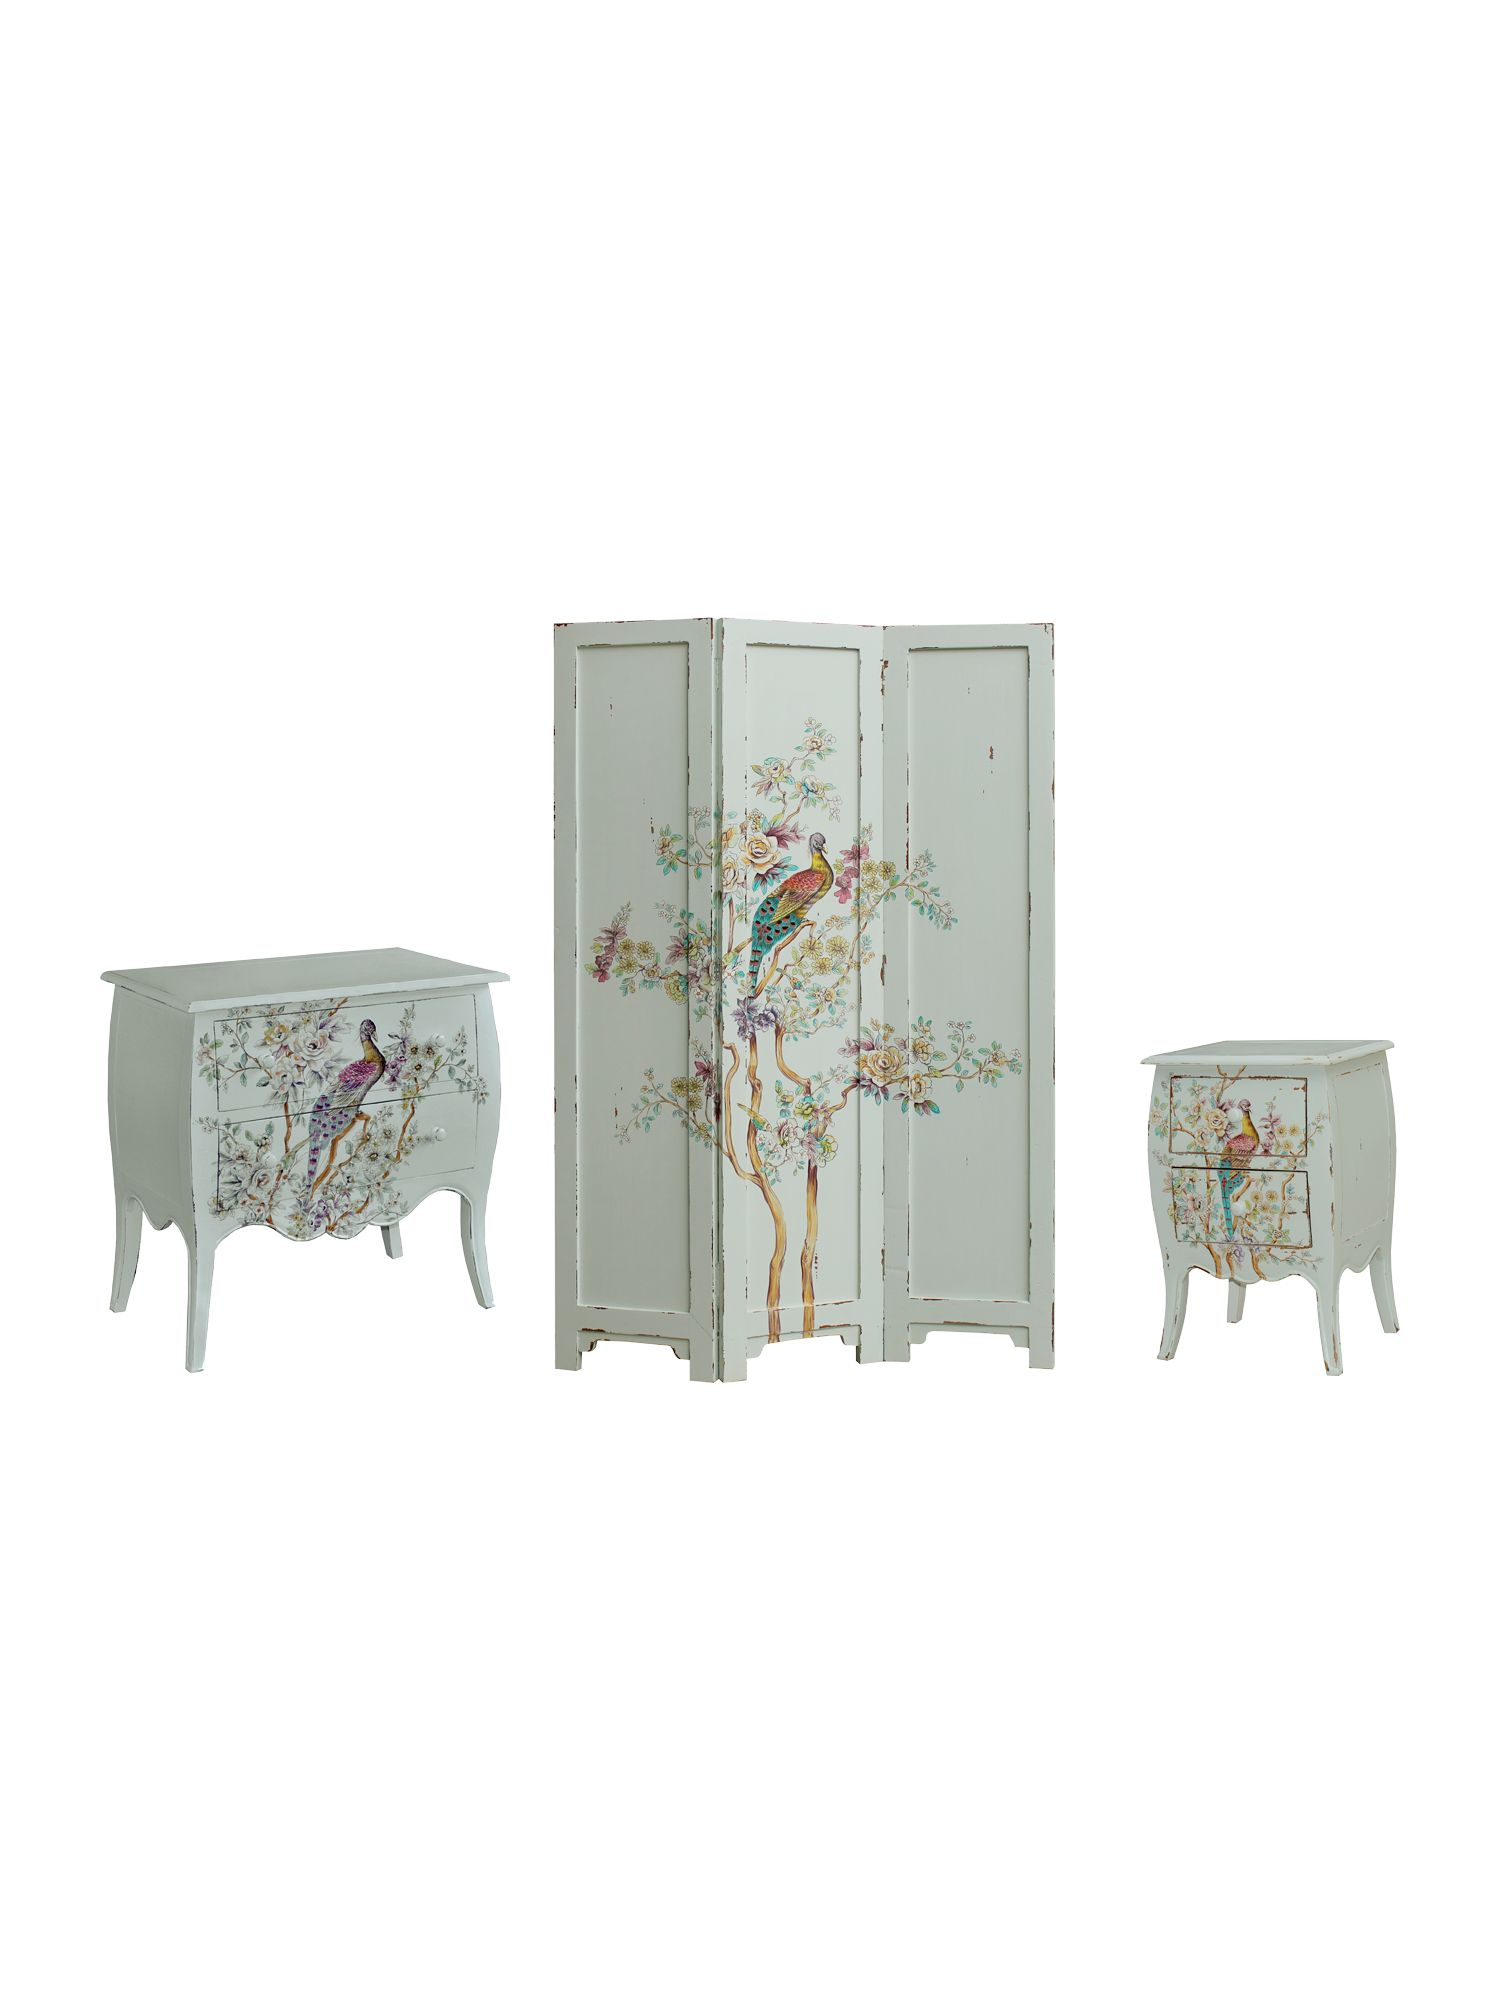 Peacock Bedroom Furniture Range